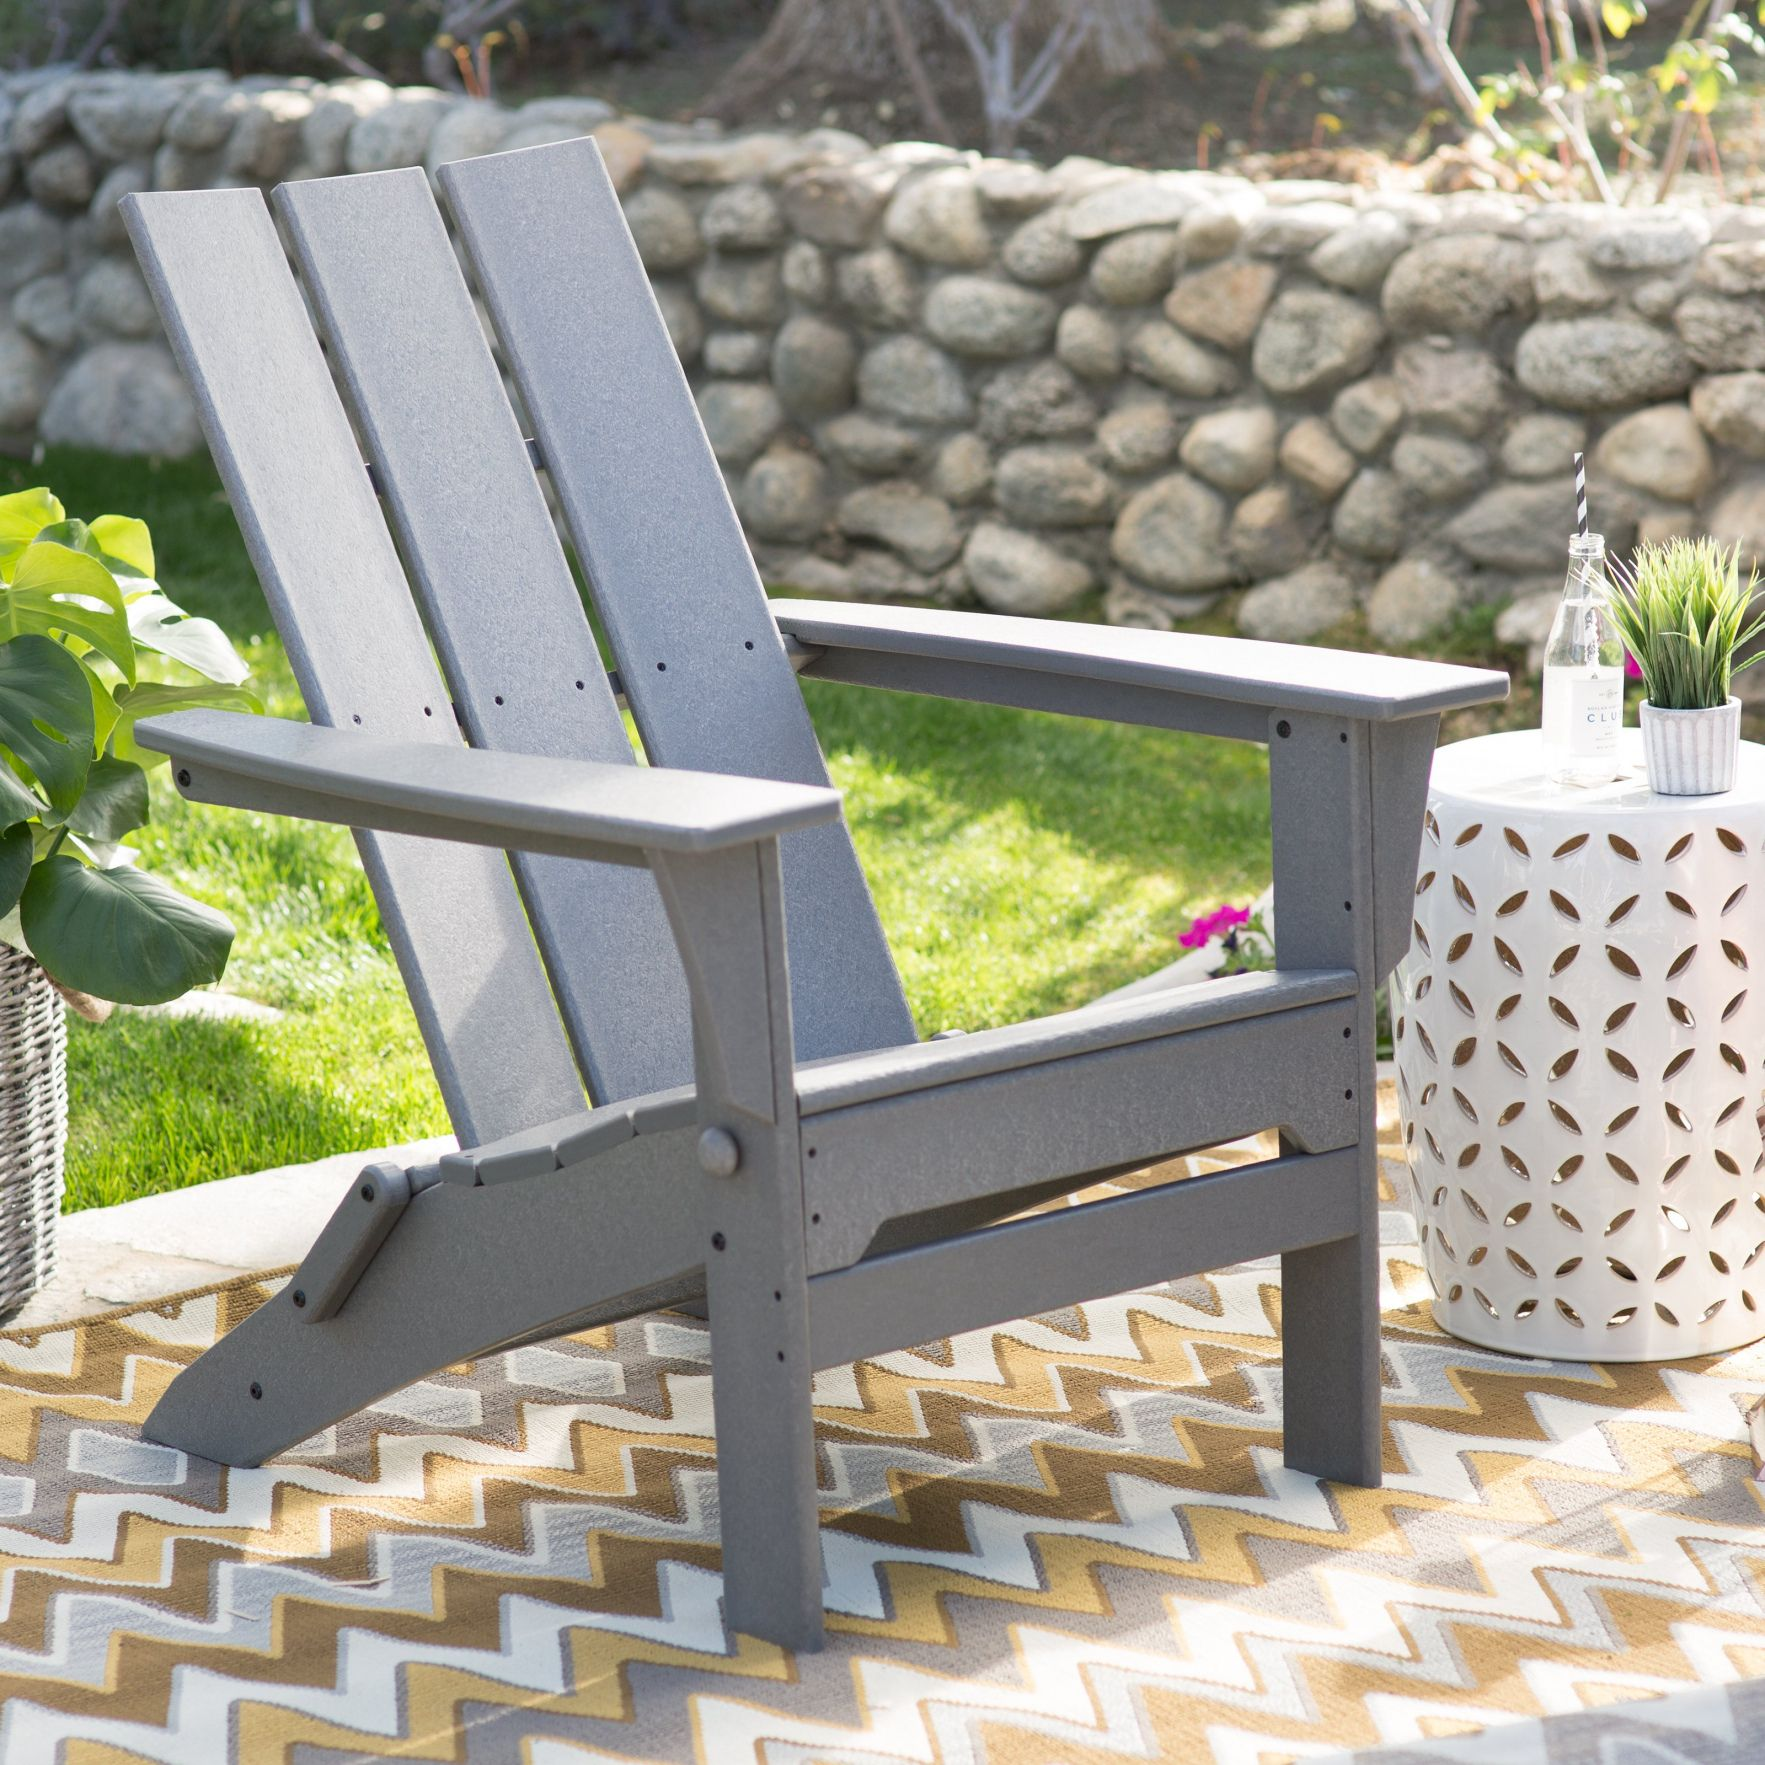 adirondack chair sale leather recliner chairs modern uk pin by erlangfahresi on desk office design pinterest 2019 folding polywood best home furniture check more at http